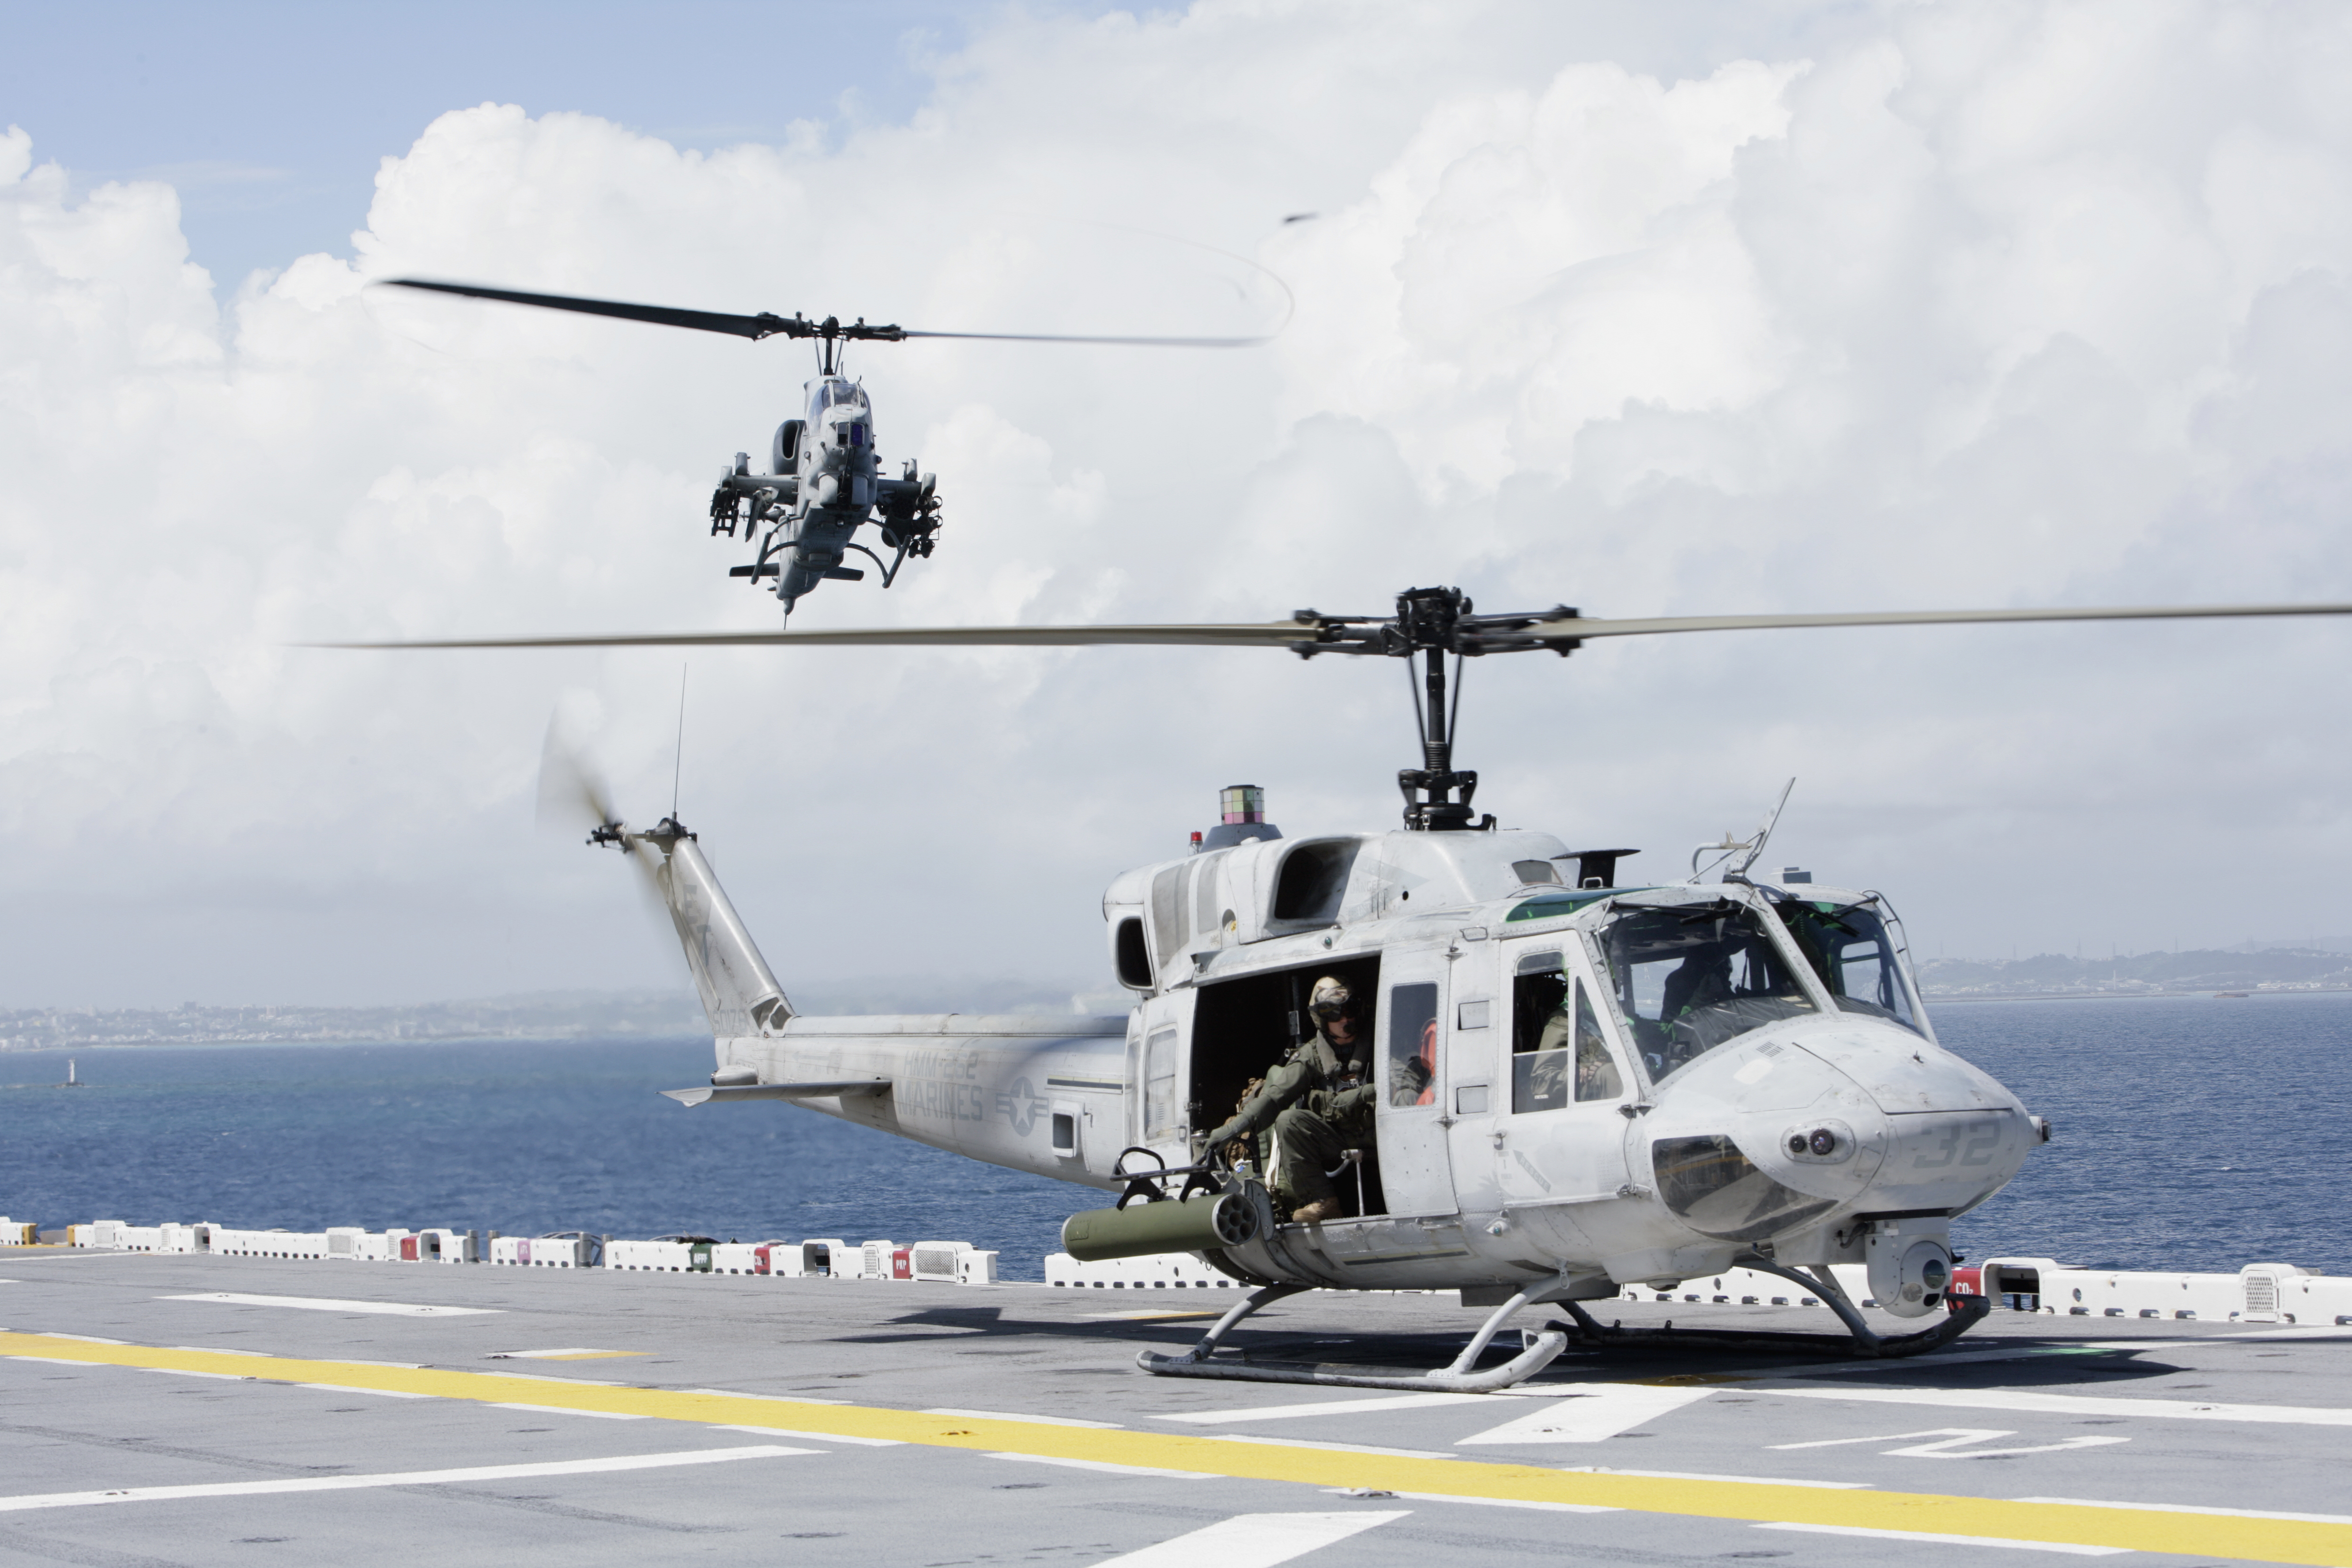 bell 427 helicopter with File Us Navy 080923 M 7474y 004 A Uh 1n Huey And An Ah 1w Super Cobra Land On The Flight Line Of The  Hibious Assault Ship Uss Essex  Lhd 2 on 37 in addition Relentless 525 besides File US Navy 080923 M 7474Y 004 A UH 1N Huey and an AH 1W Super Cobra land on the flight line of the  hibious assault ship USS Essex  LHD 2 furthermore Bell 427 08 moreover File Bell CH 135 Twin Huey  212   Canada   Air Force AN1645708.